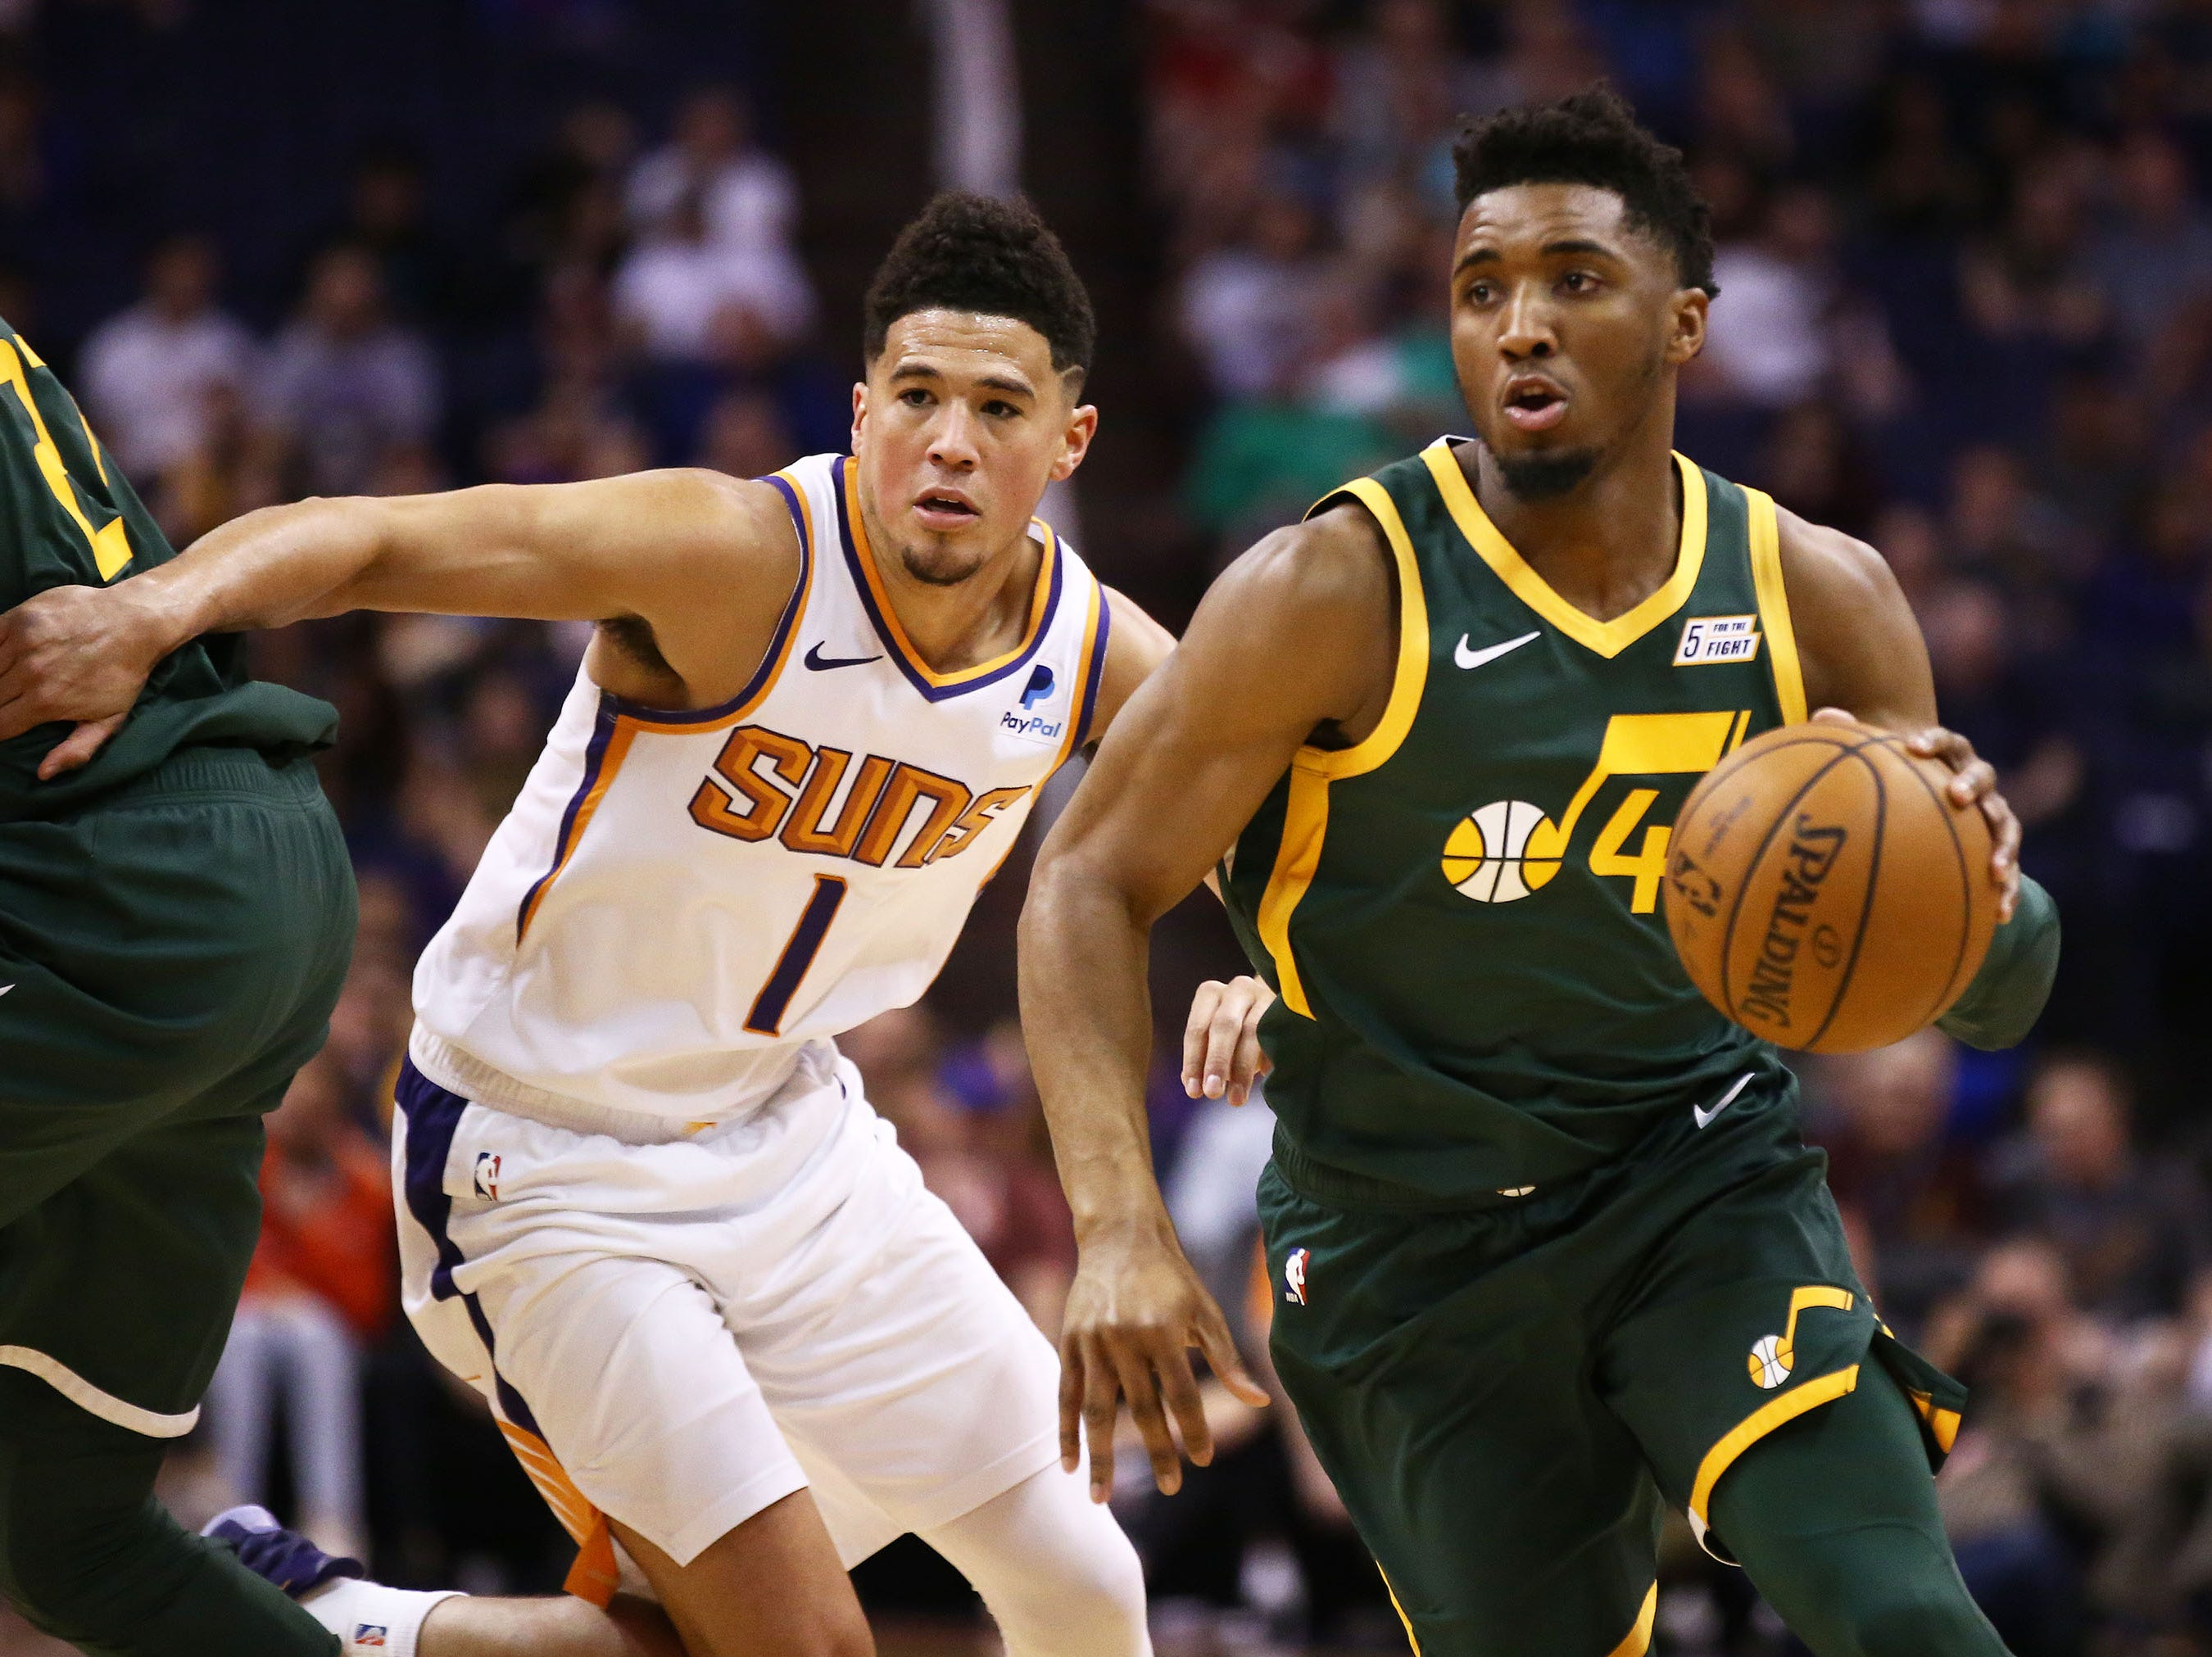 Utah Jazz guard Donovan Mitchell (45) drives past Phoenix Suns guard Devin Booker (1) in the first half on Apr. 3, 2019 at Talking Stick Resort Arena in Phoenix, Ariz.